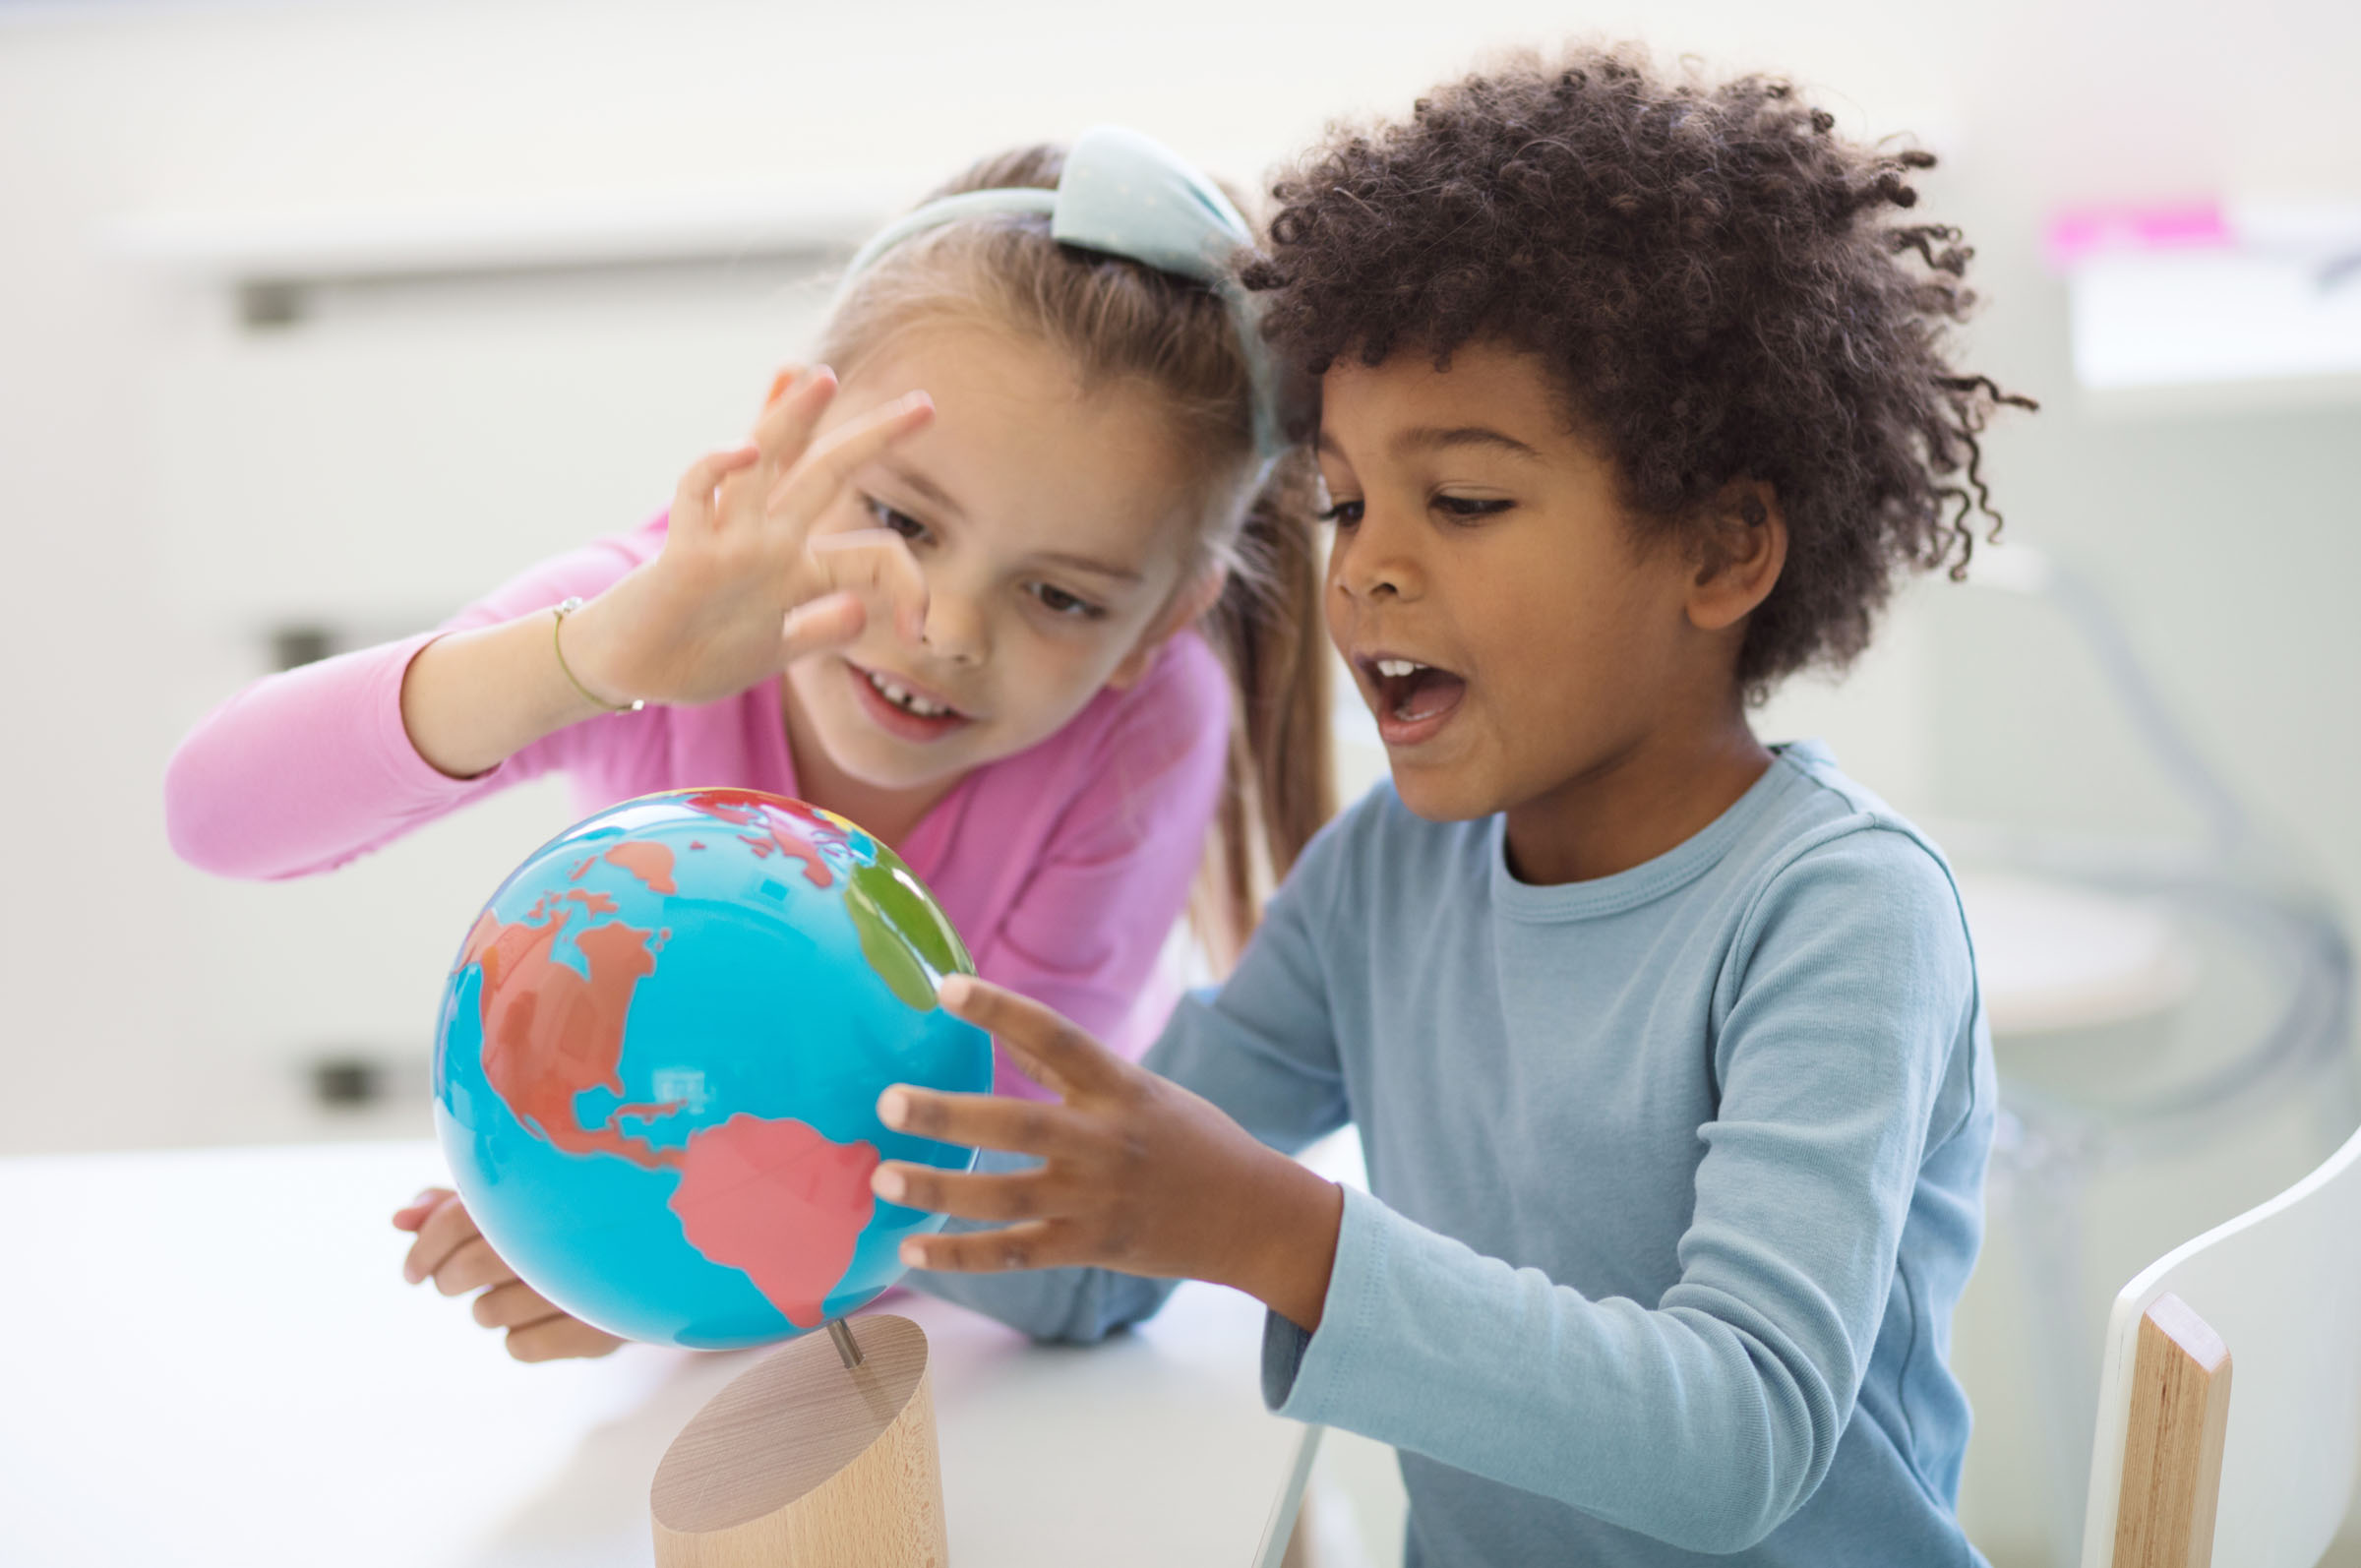 Preschool Pals looking at a globe